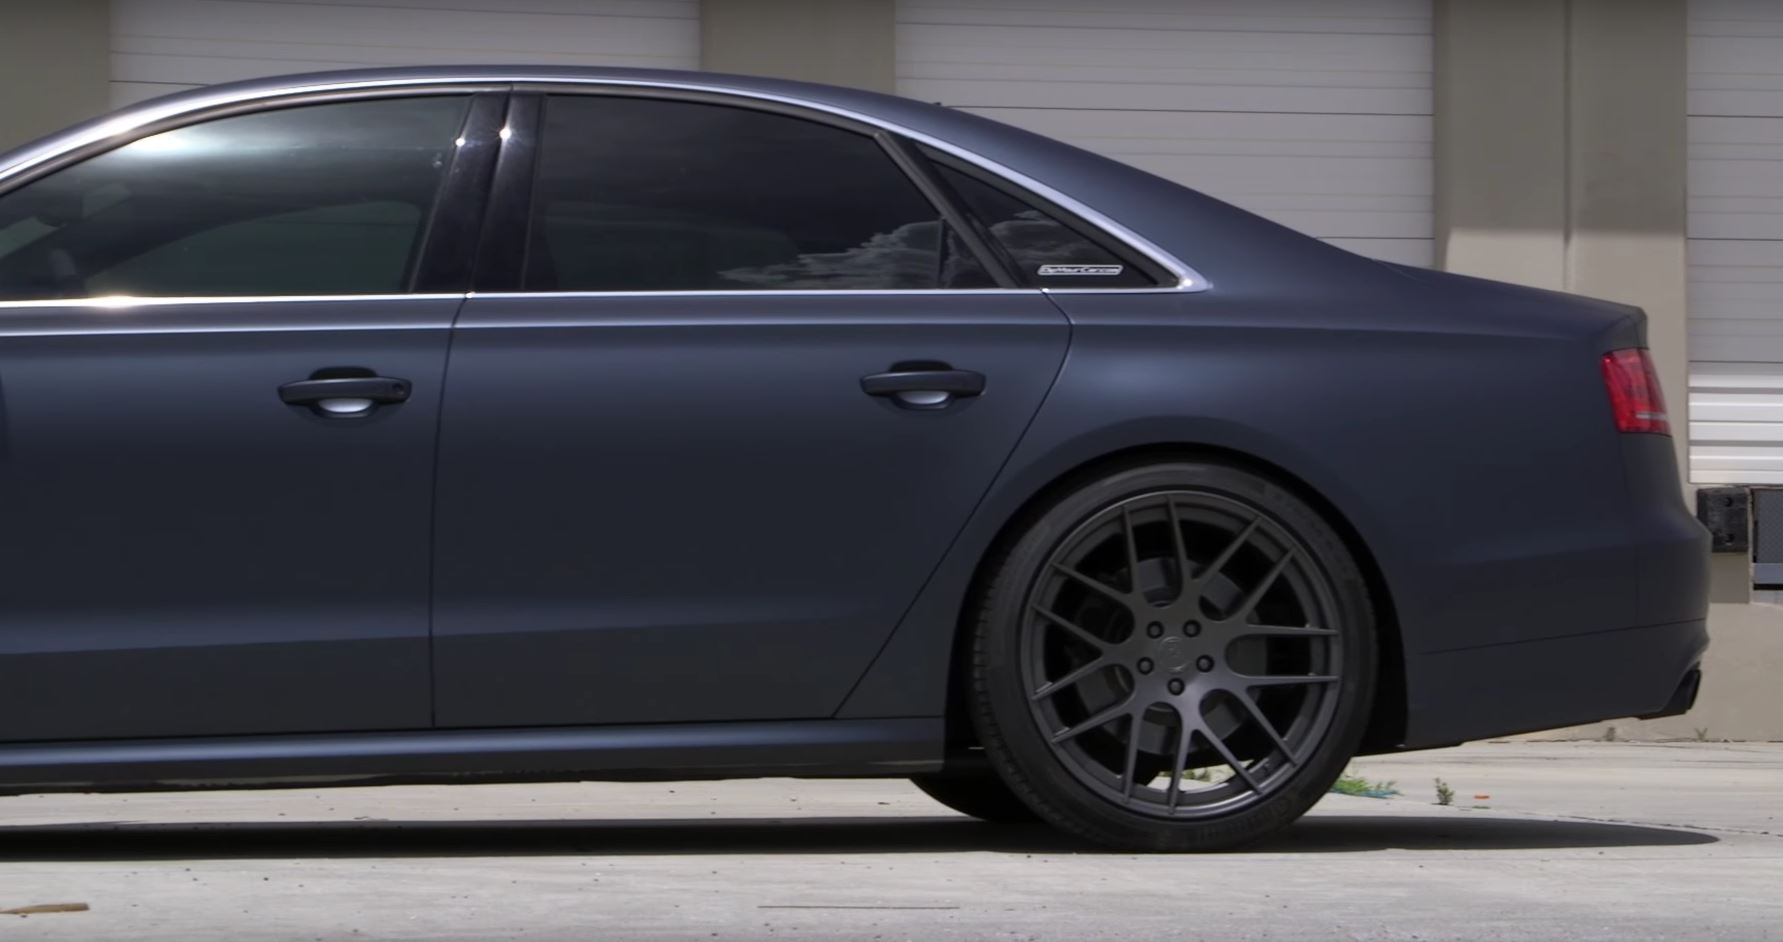 Audi S8 Goes Stealth with Steel Blue Plasti Dip Thanks to